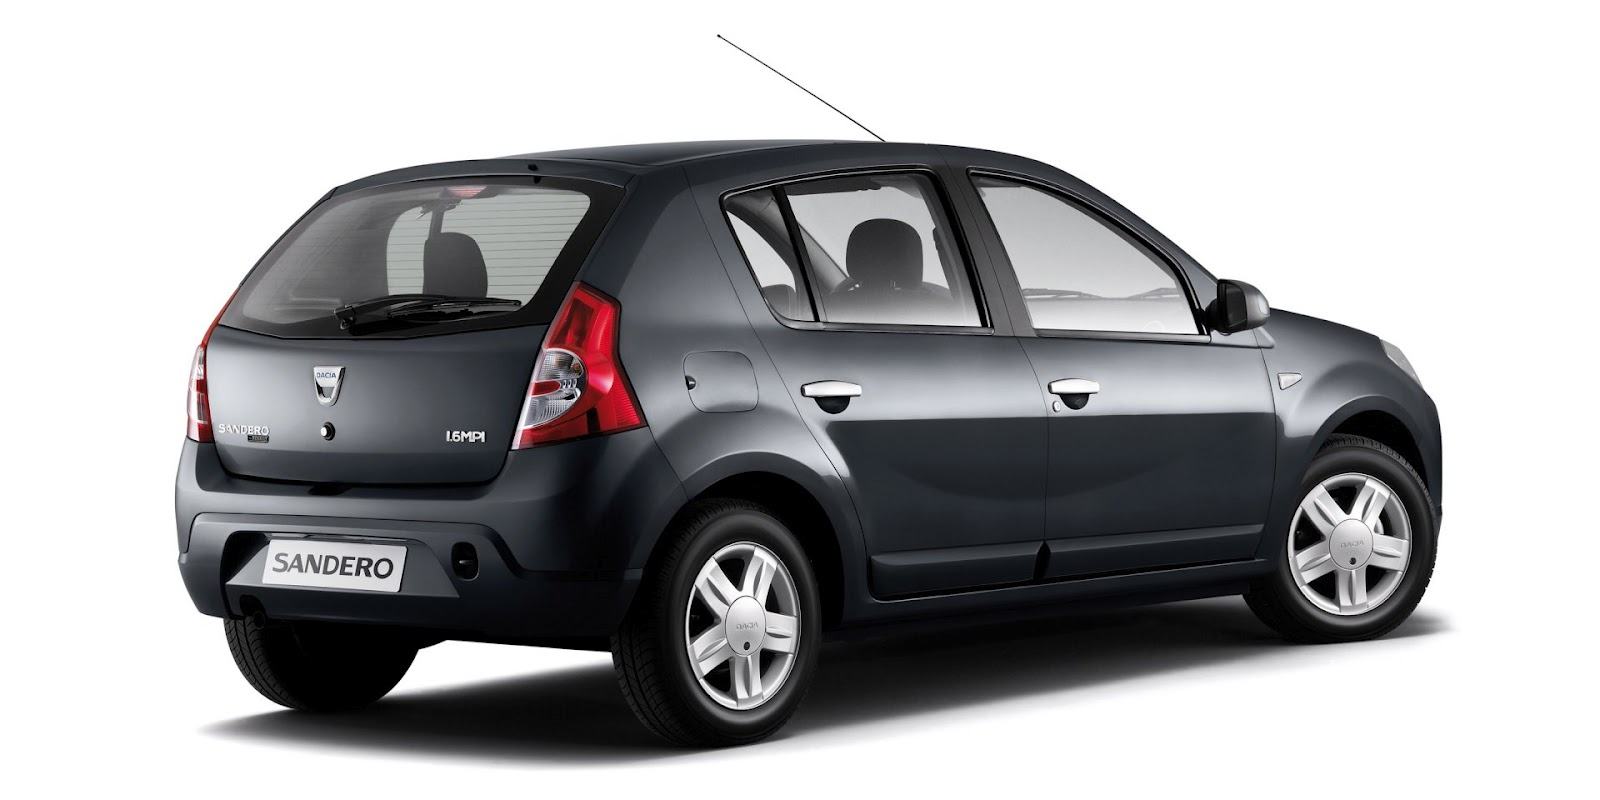 wallpapers of beautiful cars dacia sandero or renault sandero. Black Bedroom Furniture Sets. Home Design Ideas